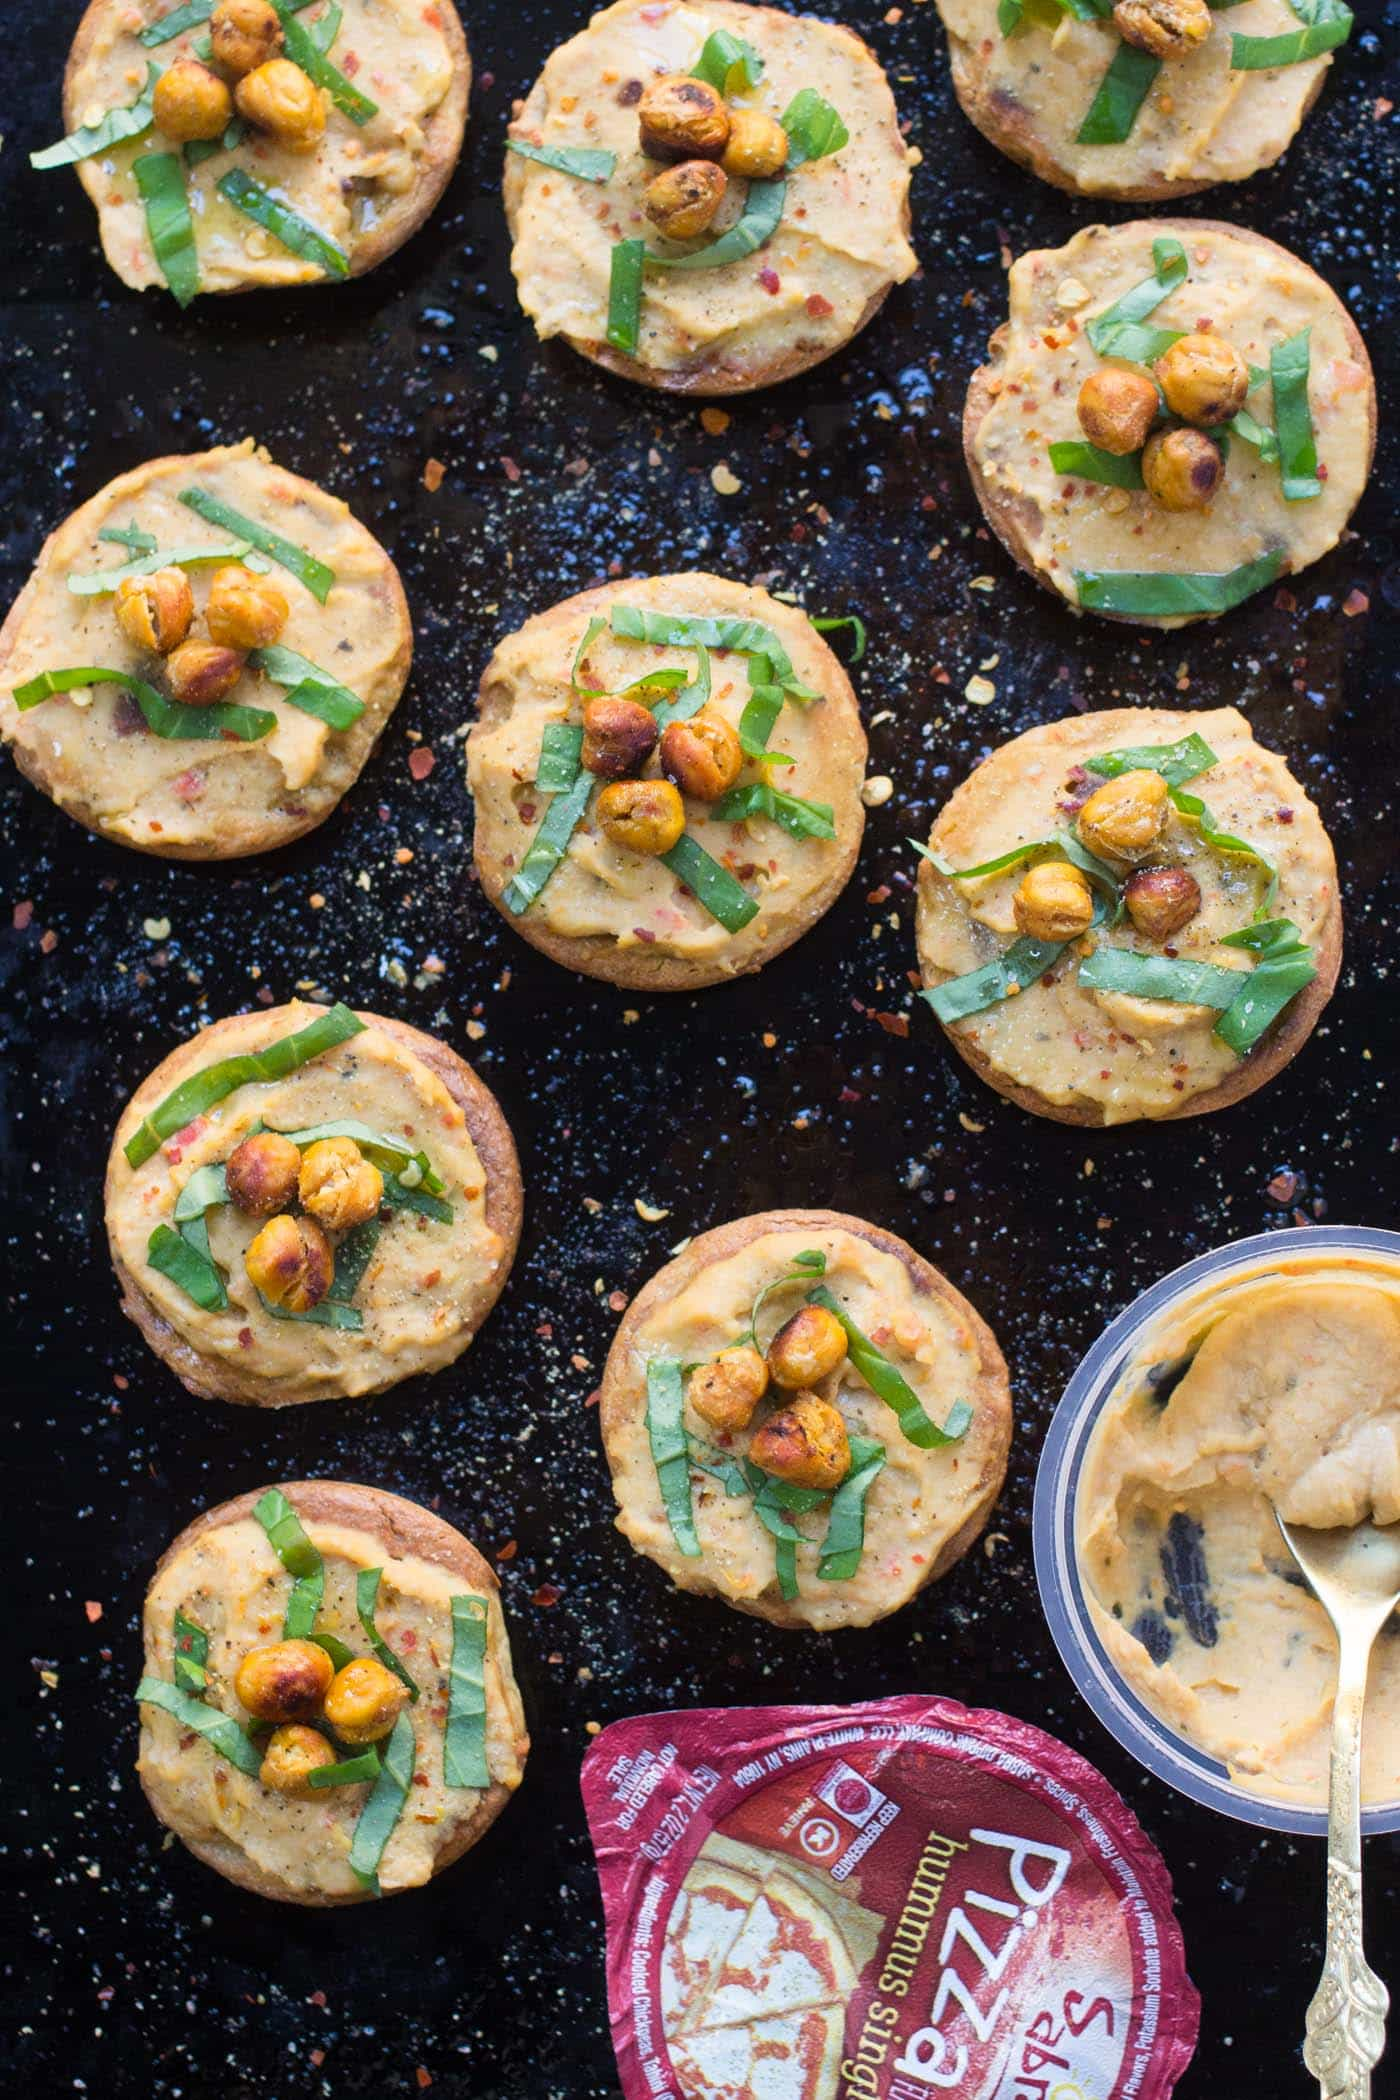 These would be the perfect dish for all my vegan friends - filled with protein, tastes like pizza AND made with quinoa? Perfection!